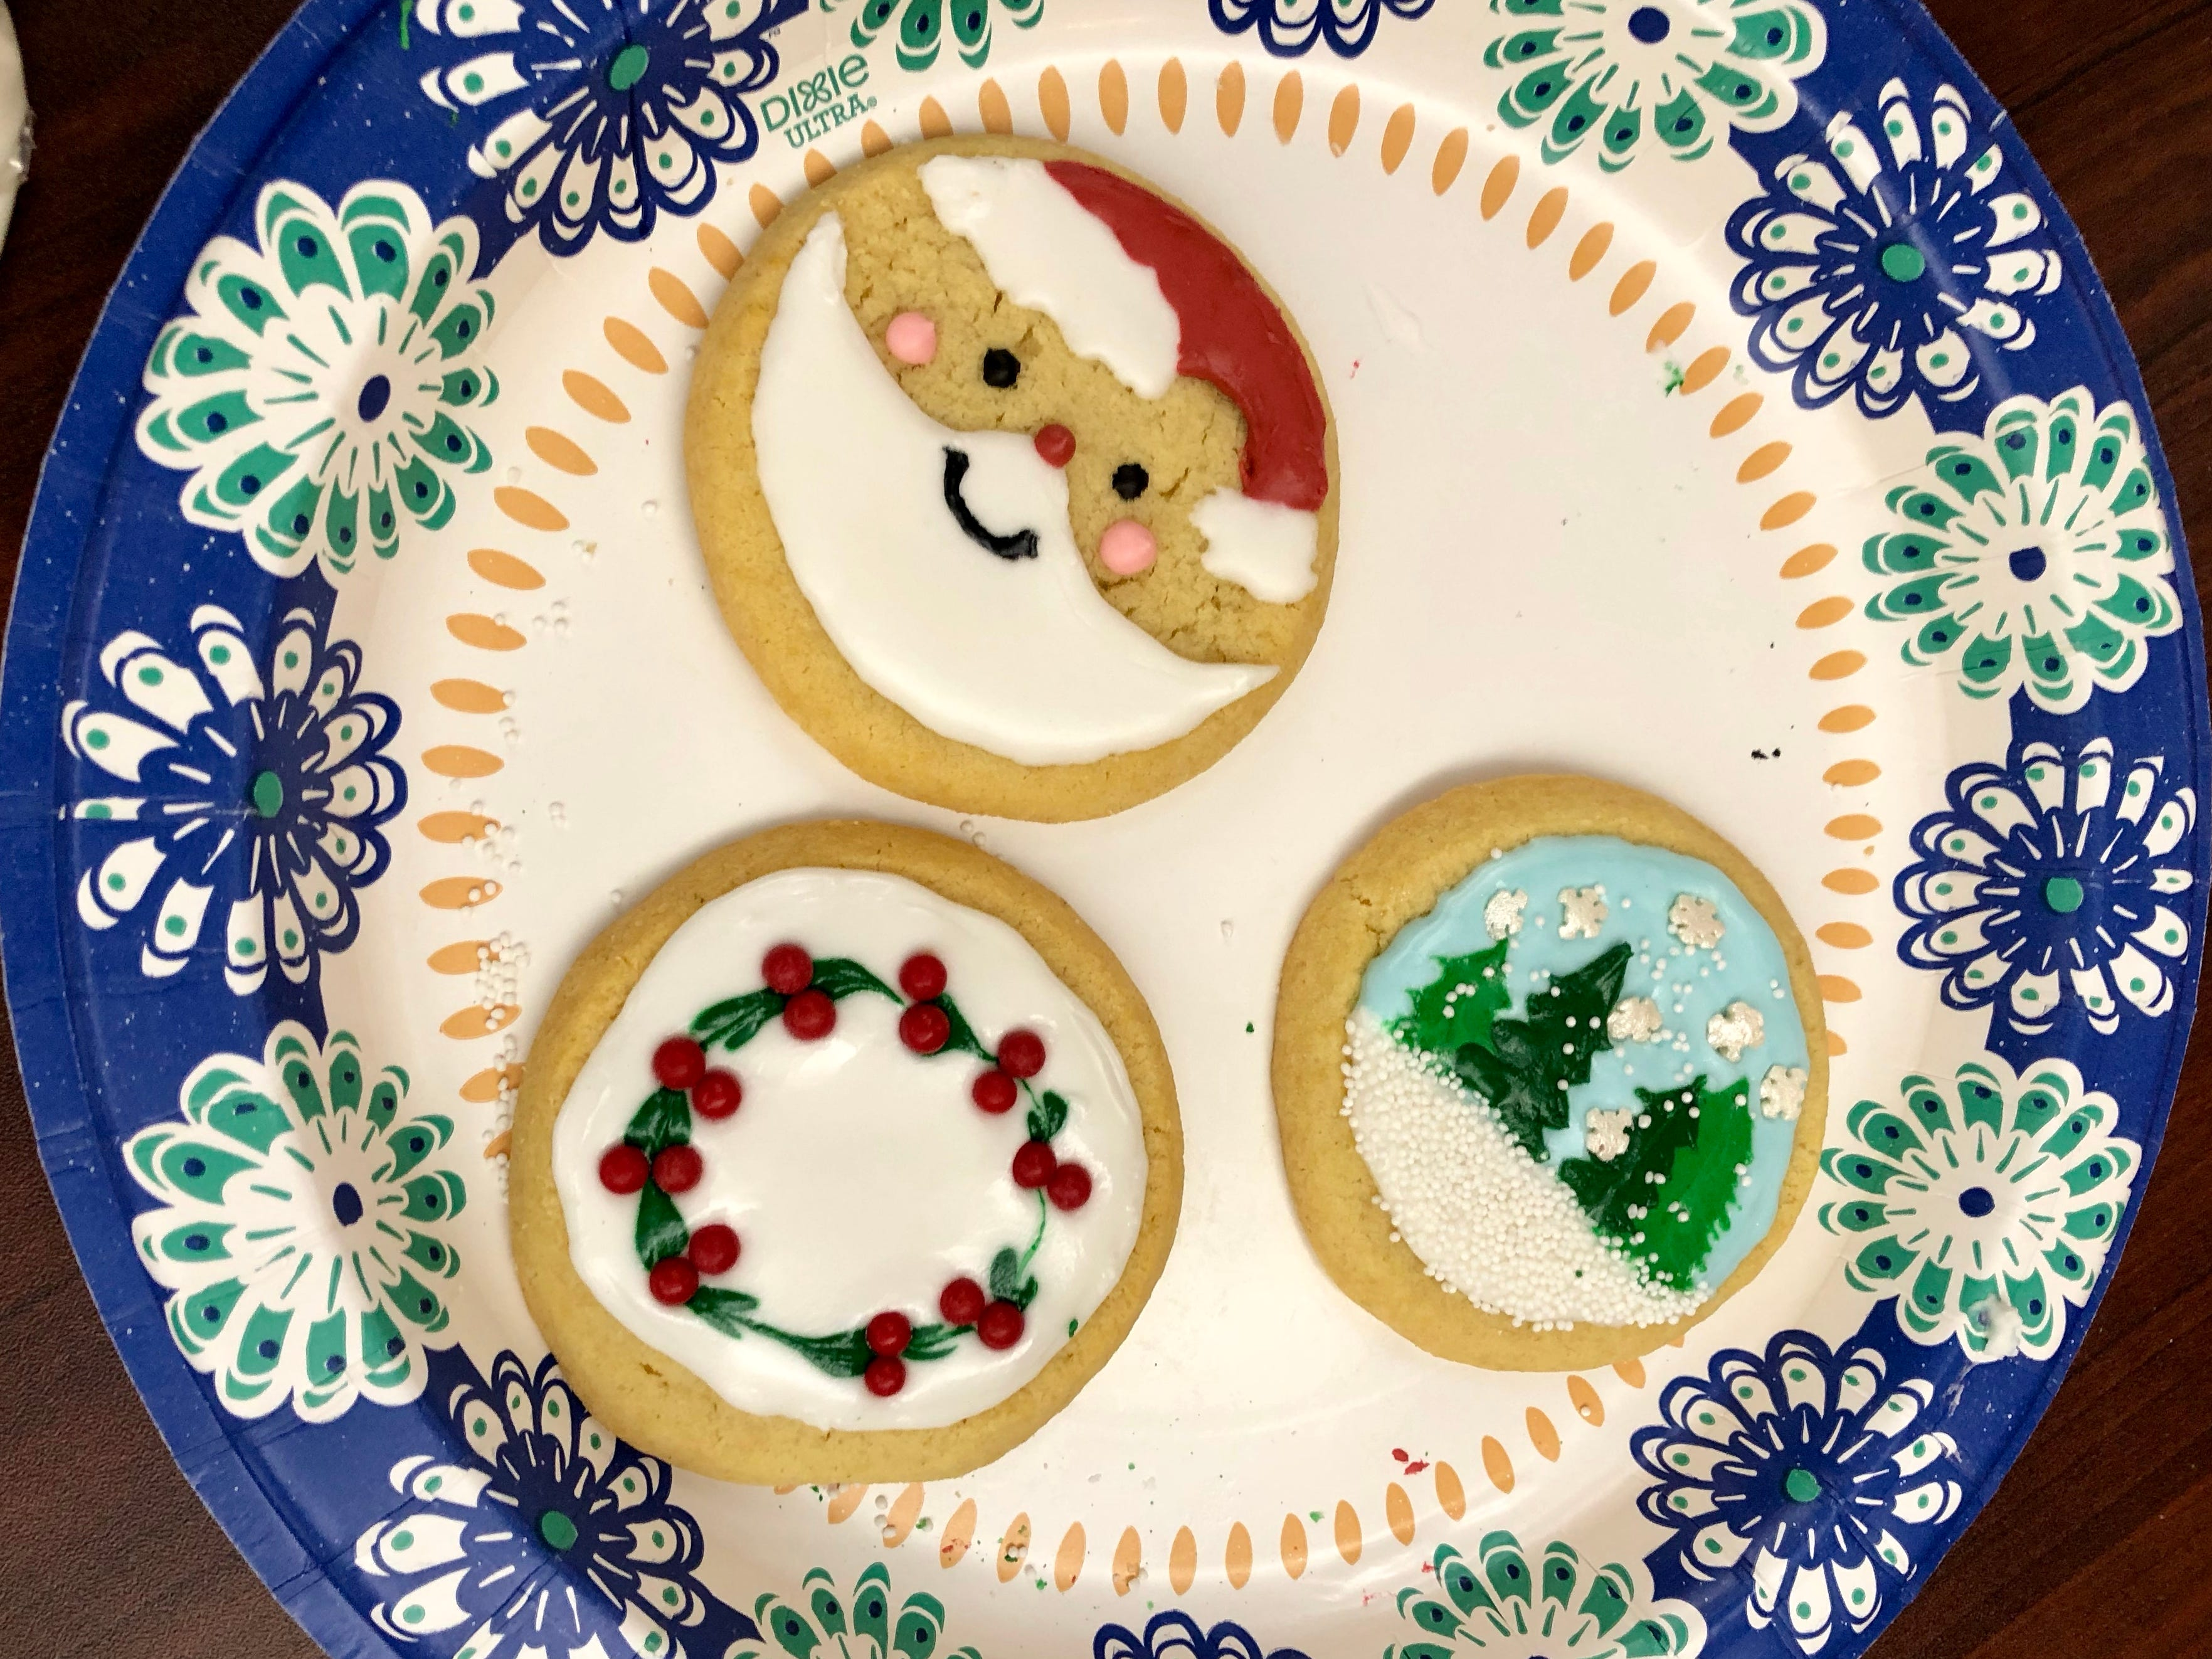 The Daily Advertiser and food writer Megan Wyatt hosted four cookie-decorating workshops in November and December to get folks ready for Christmas.